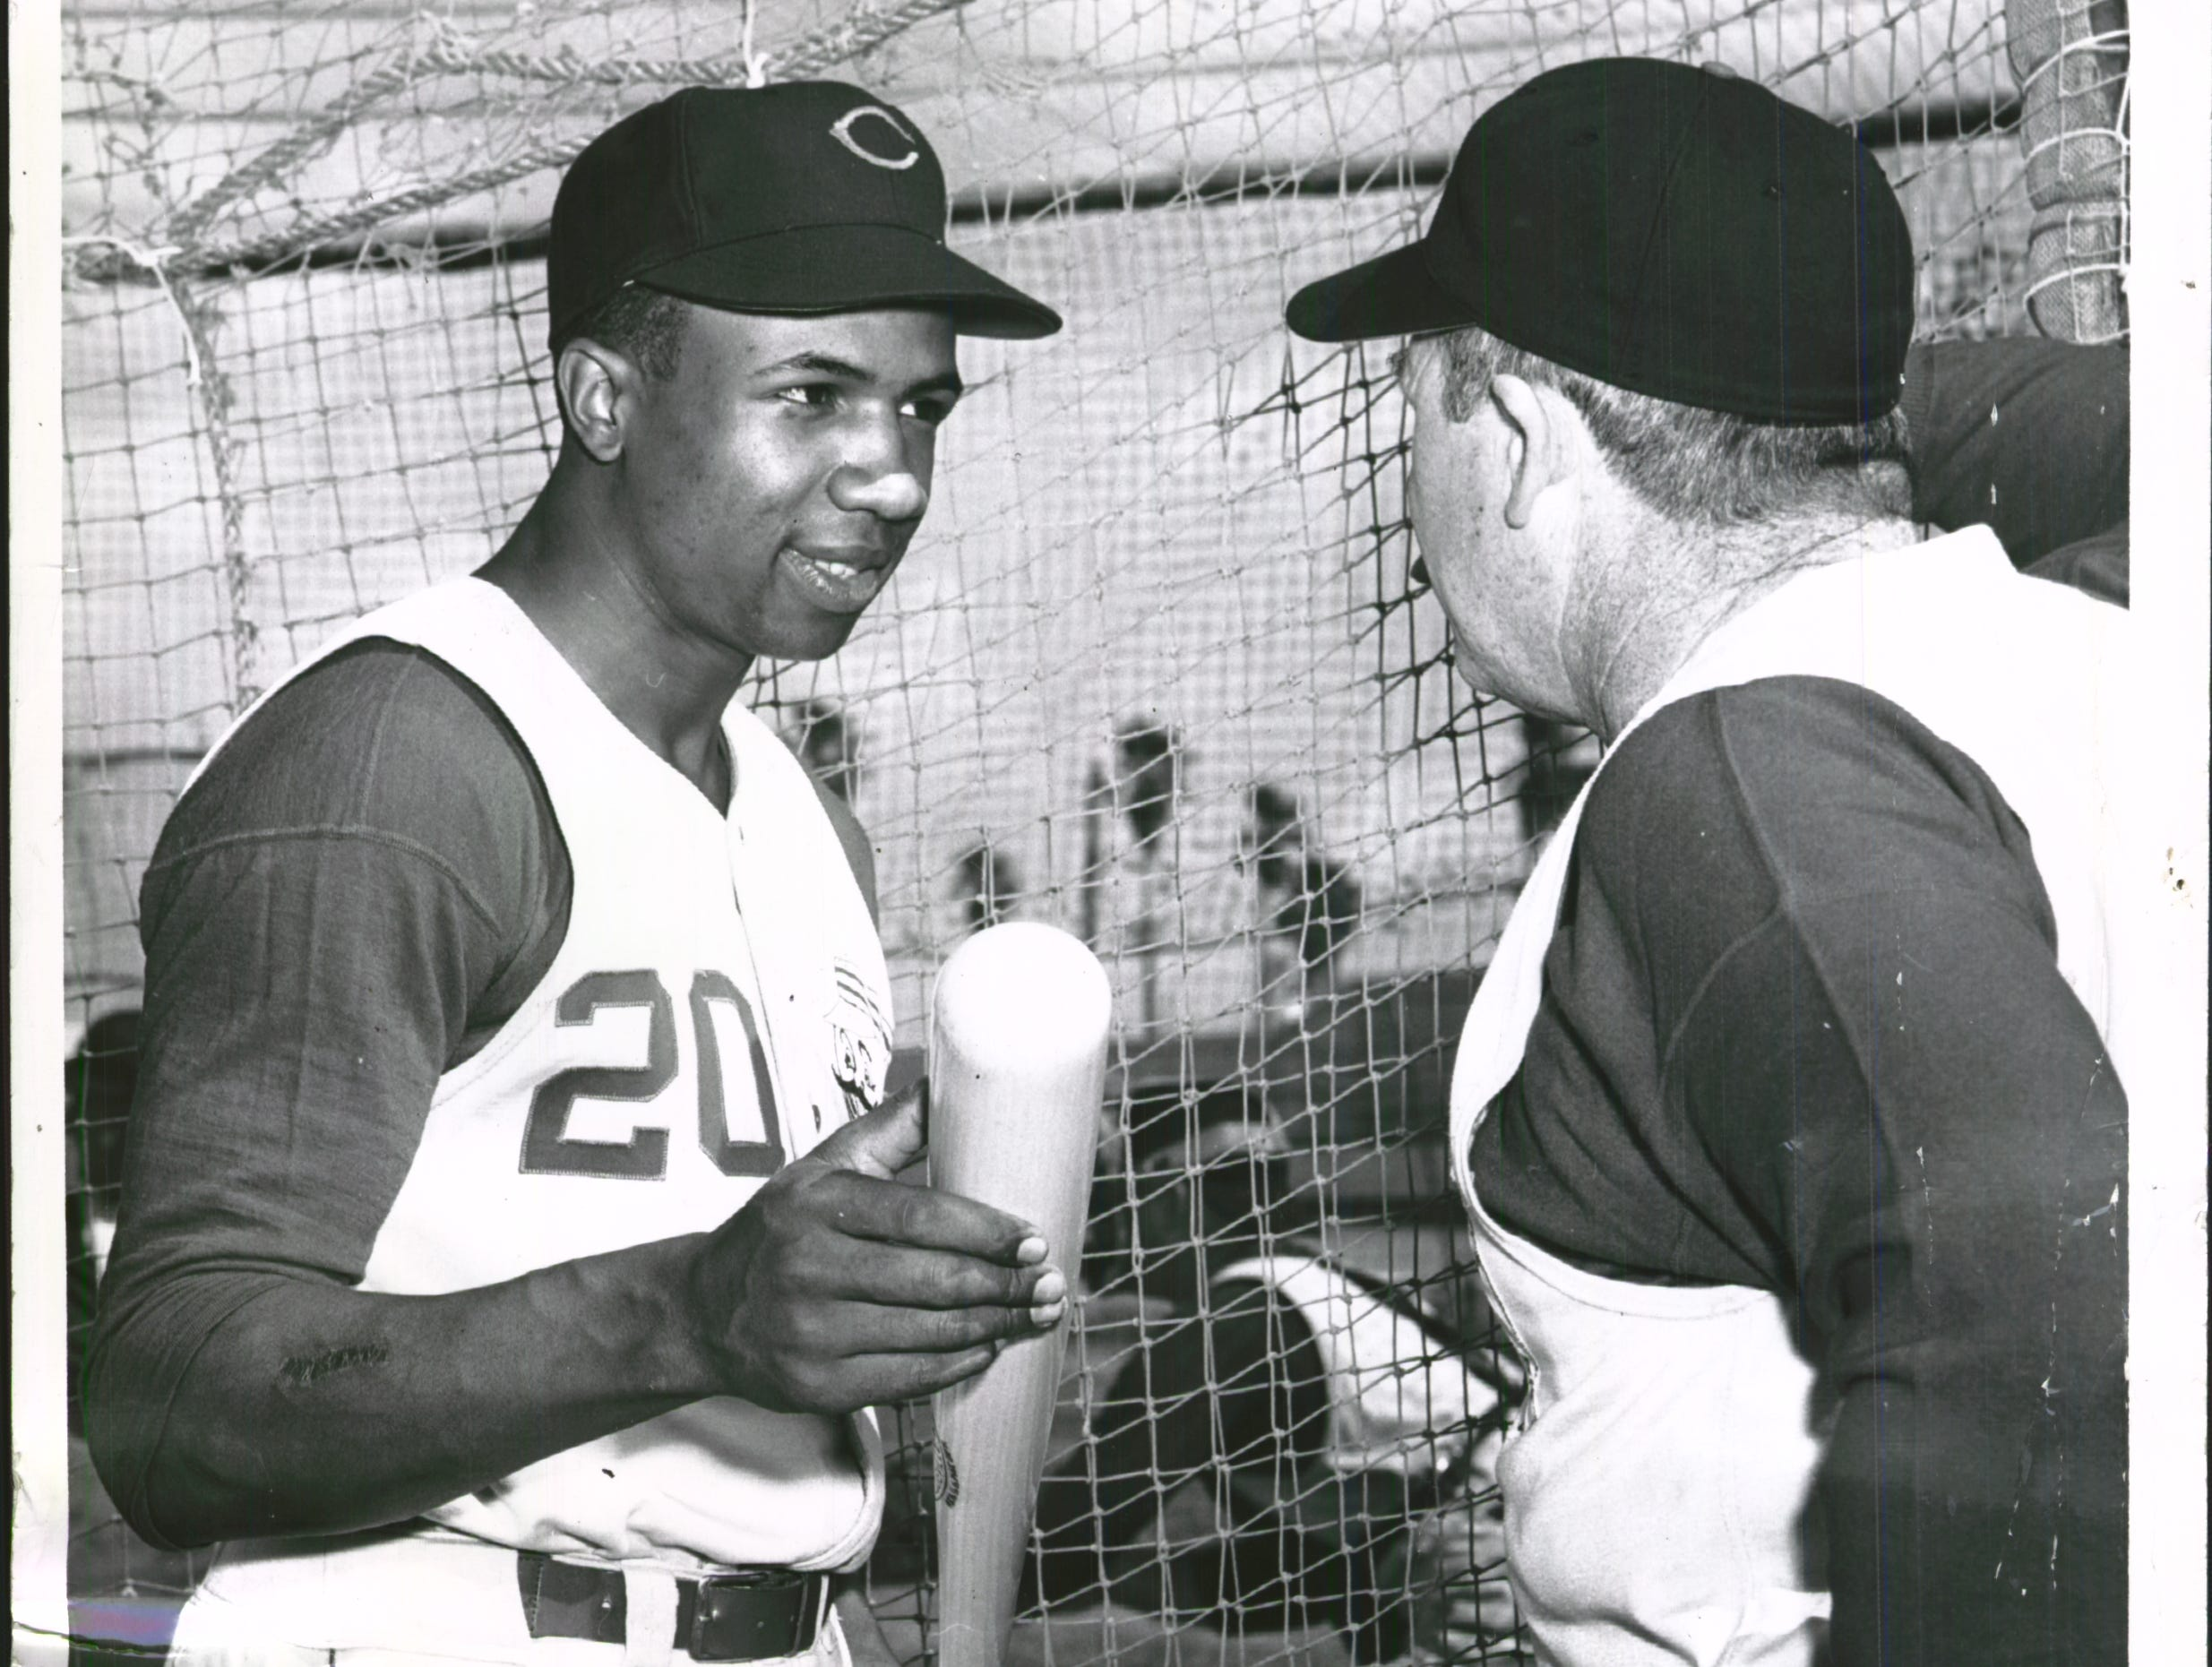 Frank Robinson, left, chatted with his manager, Birdie Tebbetts, before taking his turn in the hitter's cage at the Reds' spring training camp at Tampa, Fla.